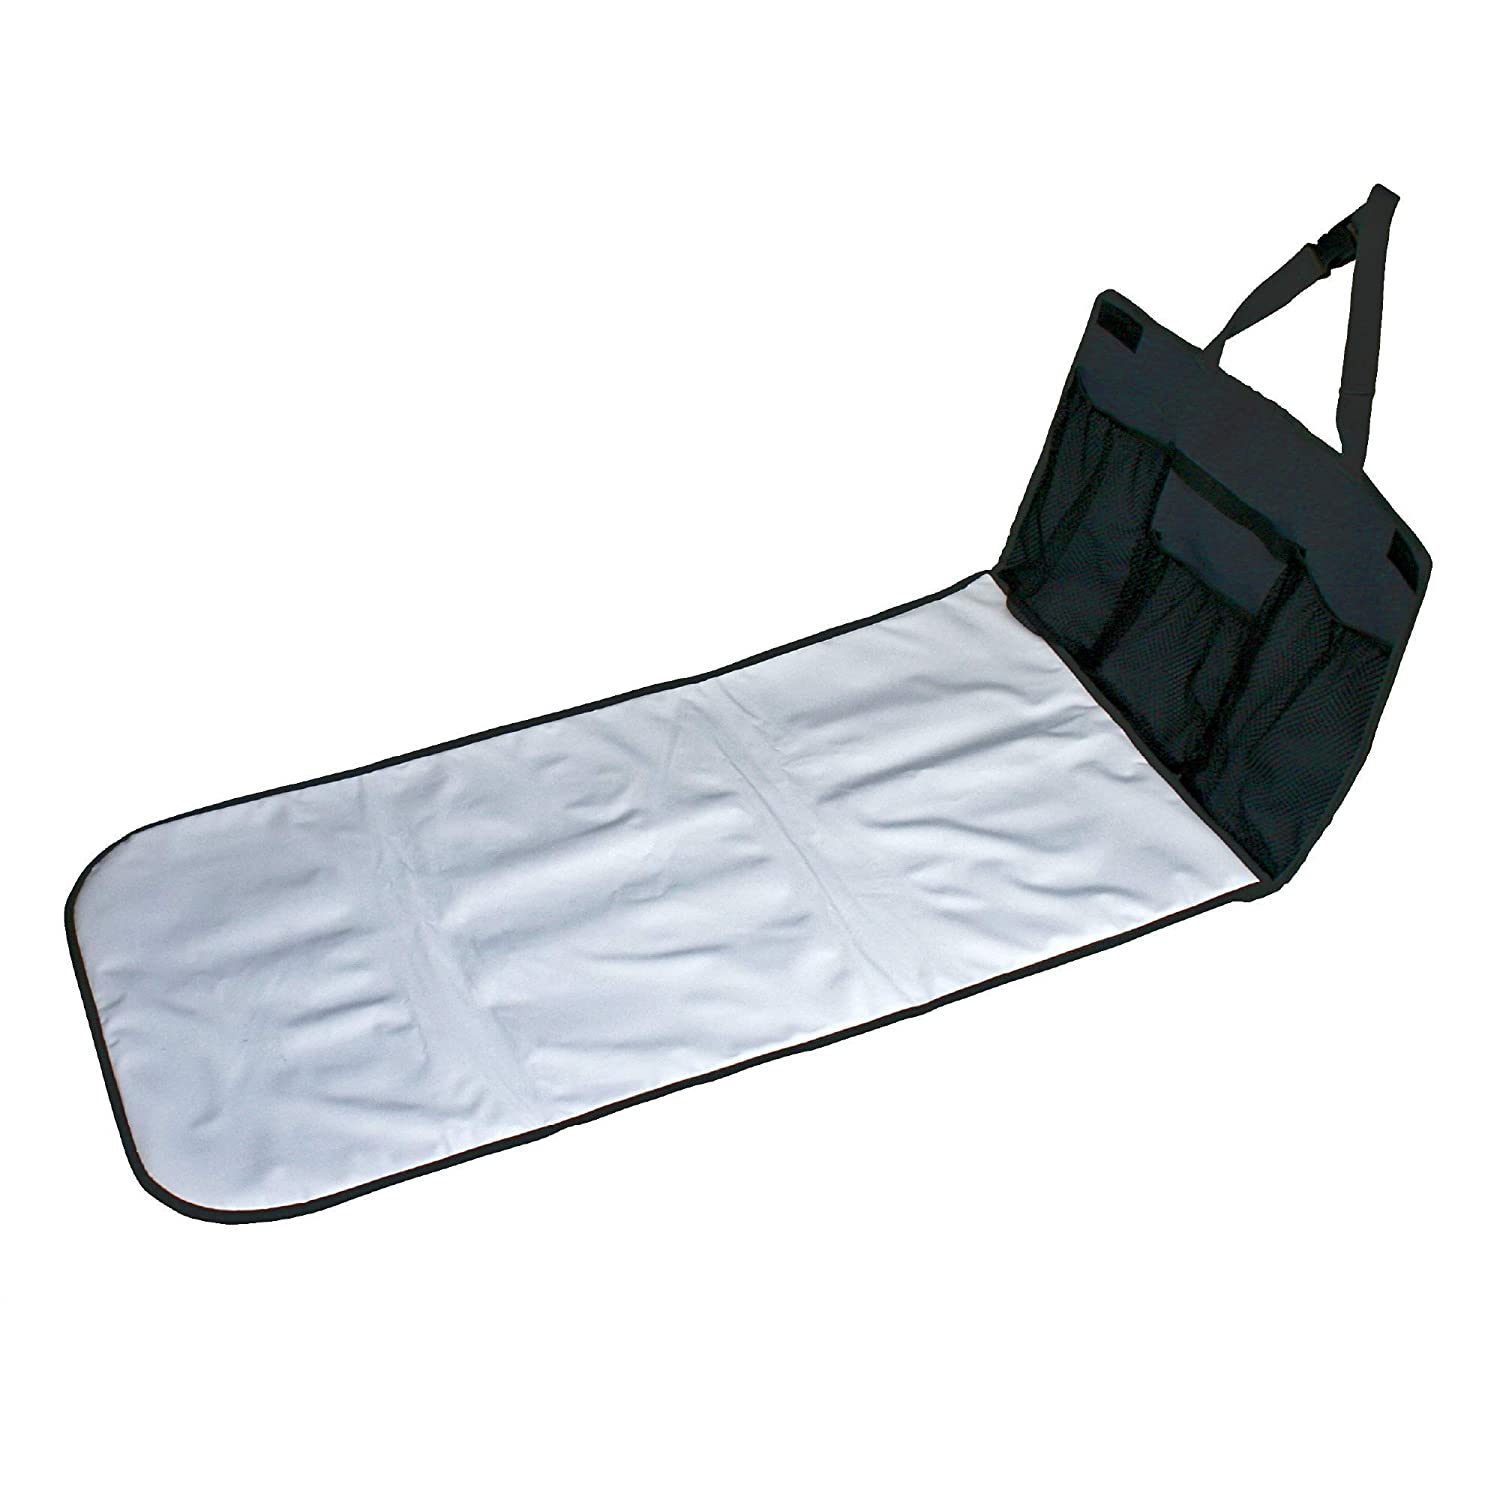 J.L. Childress Pockets 'N Pad, Portable Diapering Station for Your Vehicle, Detachable Changing Pad, Pocket Panel for Storage, Fully Padded, X-Large Dimensions (36